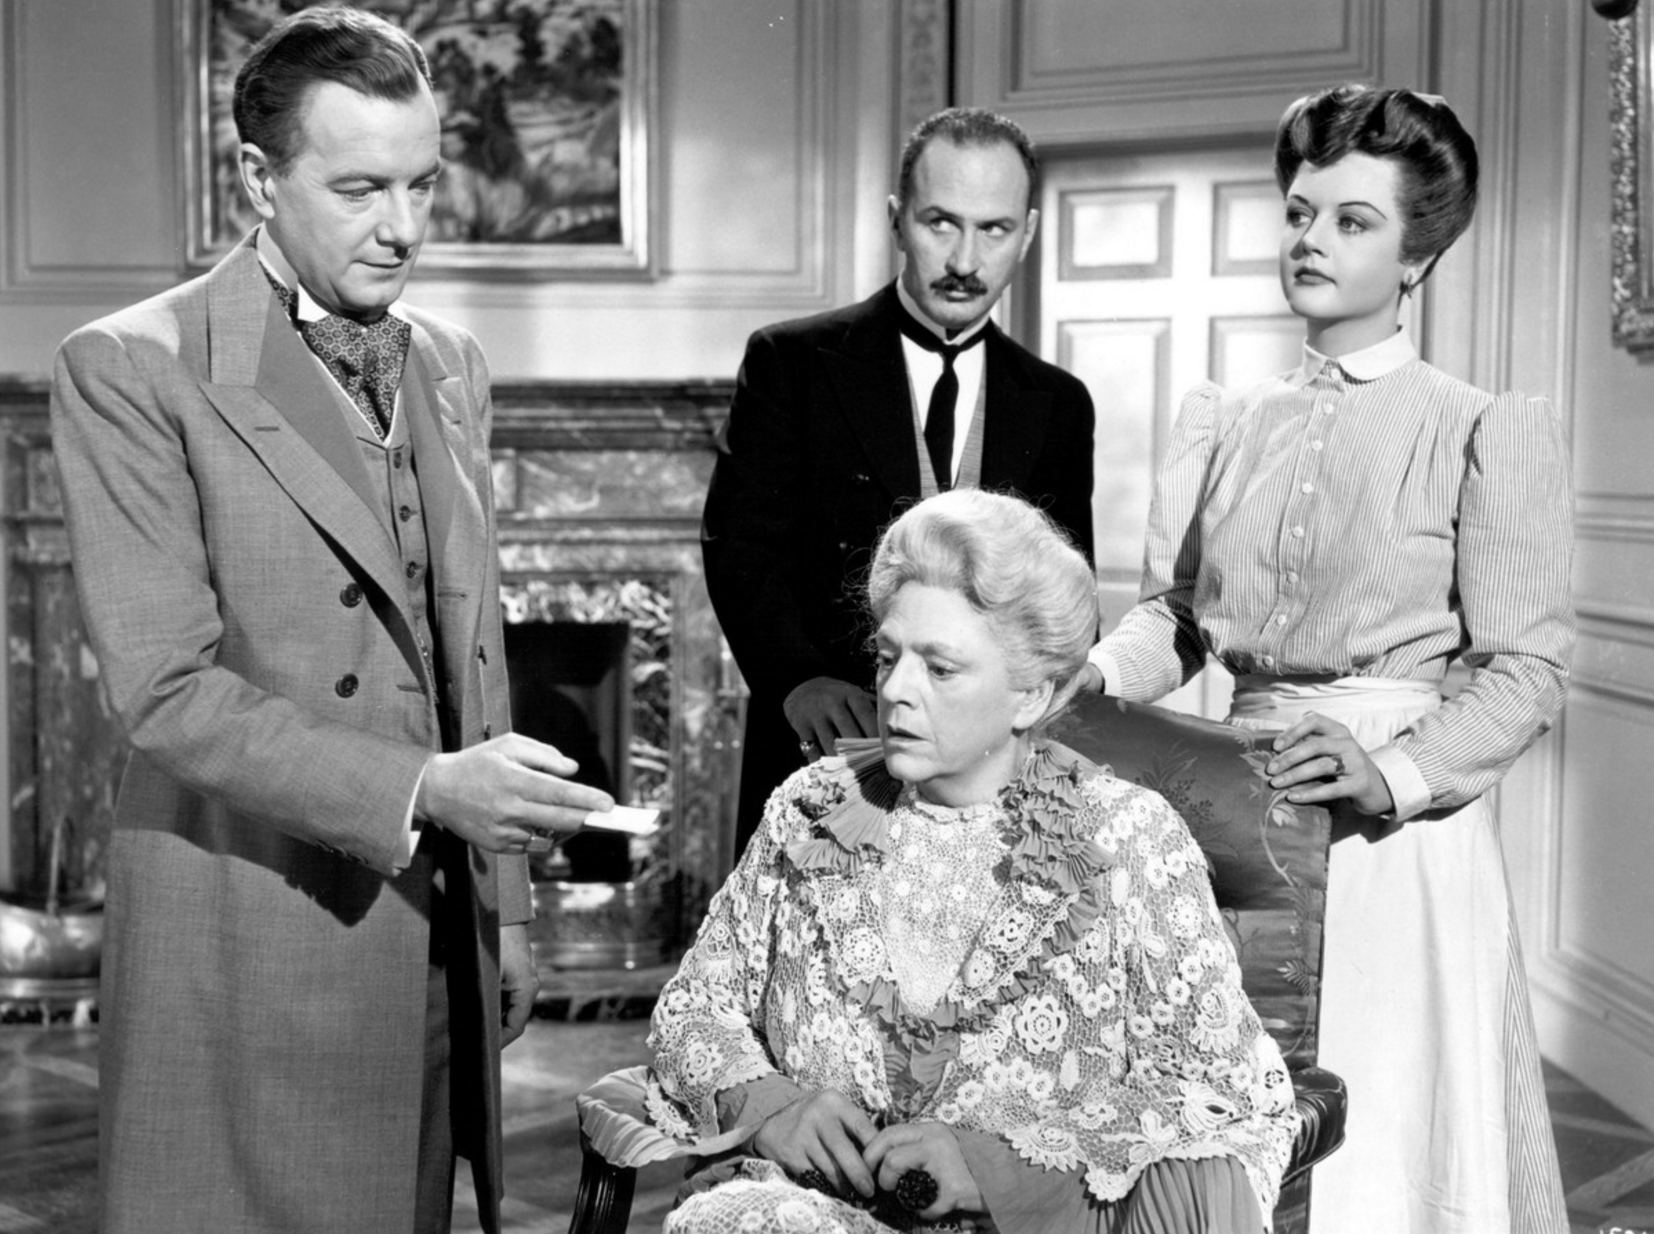 (From left) Maurice Evans, Ethel Barrymore, Keenan Wynn, Angela Lansbury